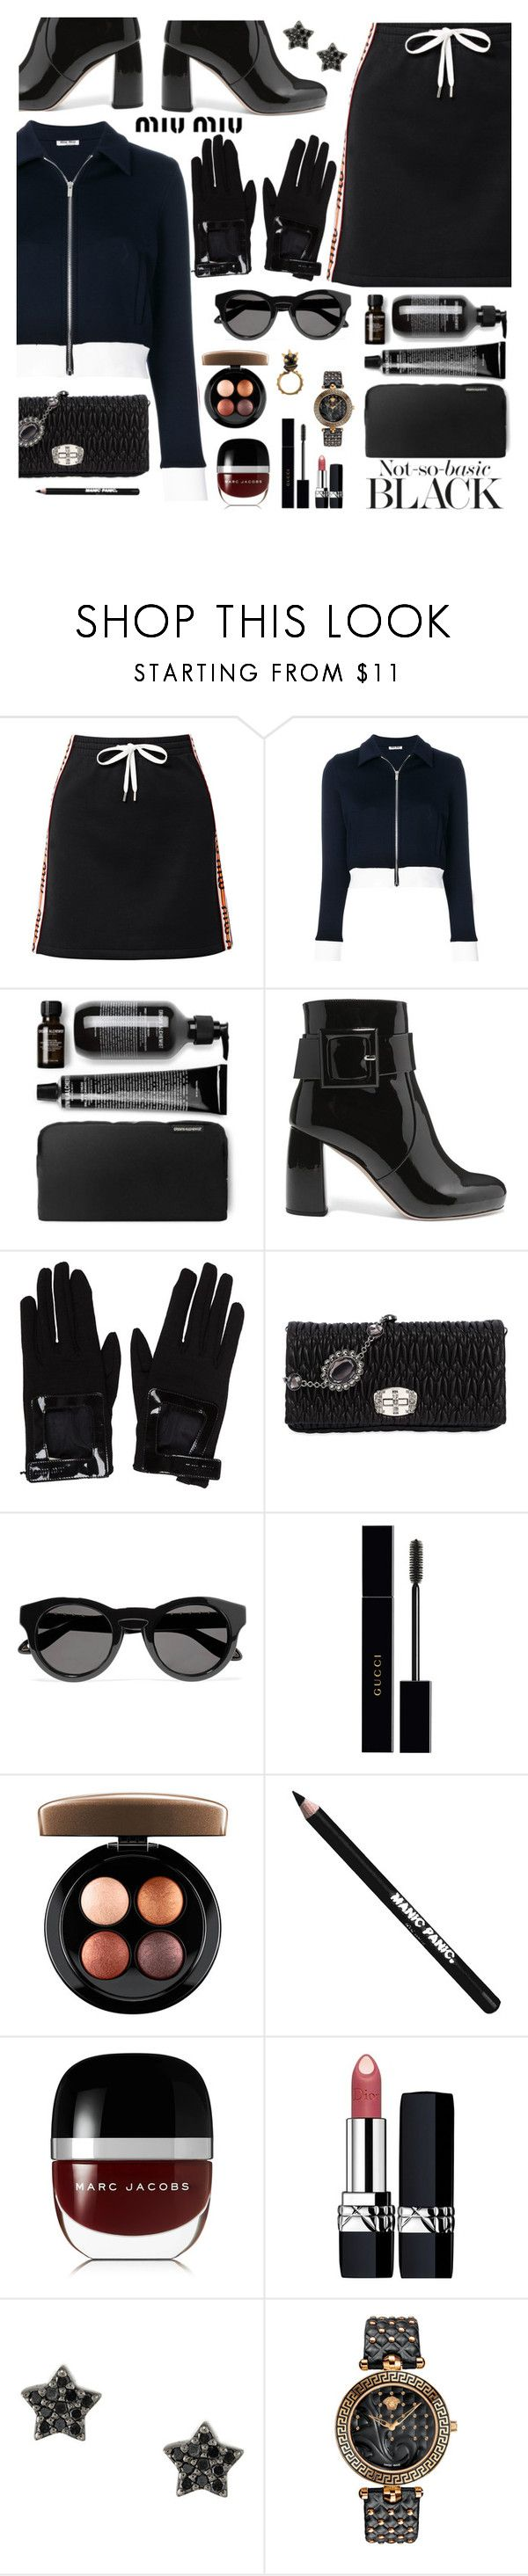 """Not So Basic Black"" by juliehooper ❤ liked on Polyvore featuring Miu Miu, Givenchy, Gucci, MAC Cosmetics, Manic Panic NYC, Marc Jacobs, Christian Dior, Astley Clarke, Versace and miumiu"